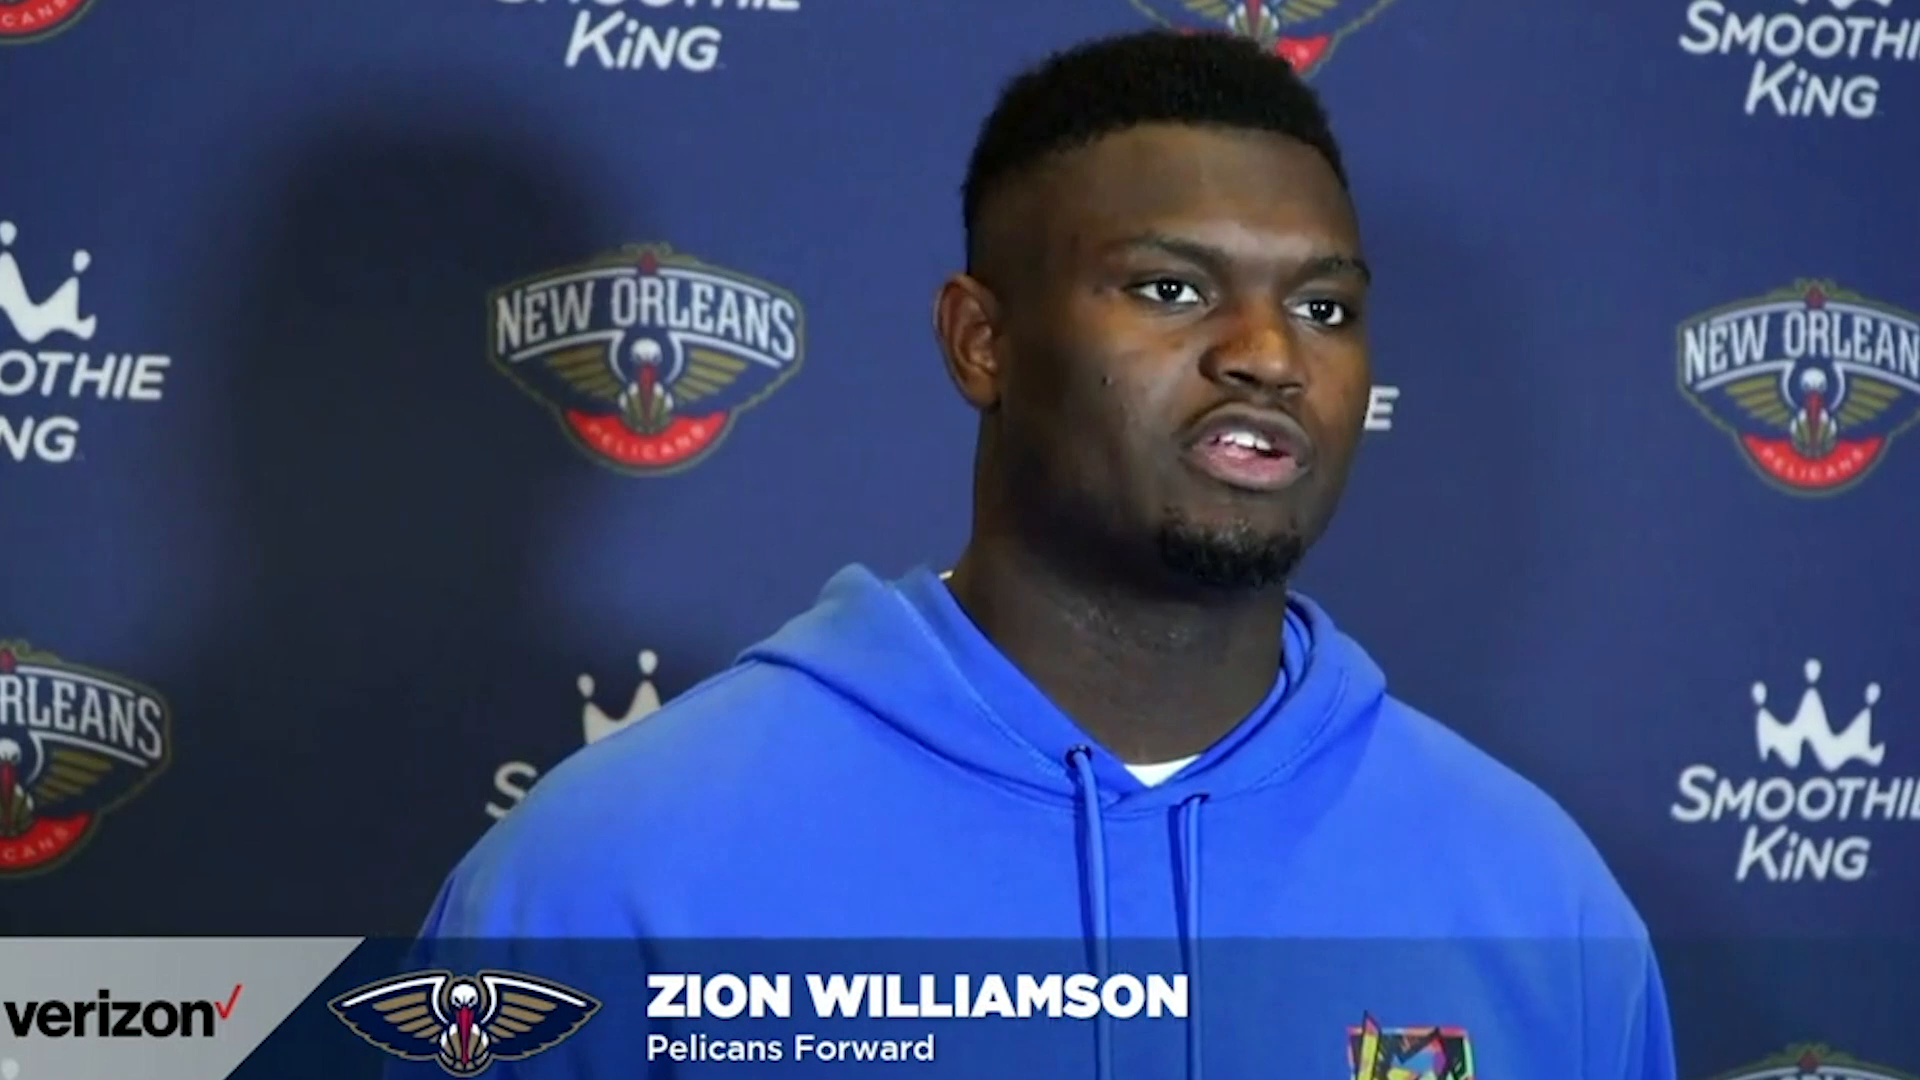 Pelicans-Nets Postgame Interview: Zion Williamson 4-20-21